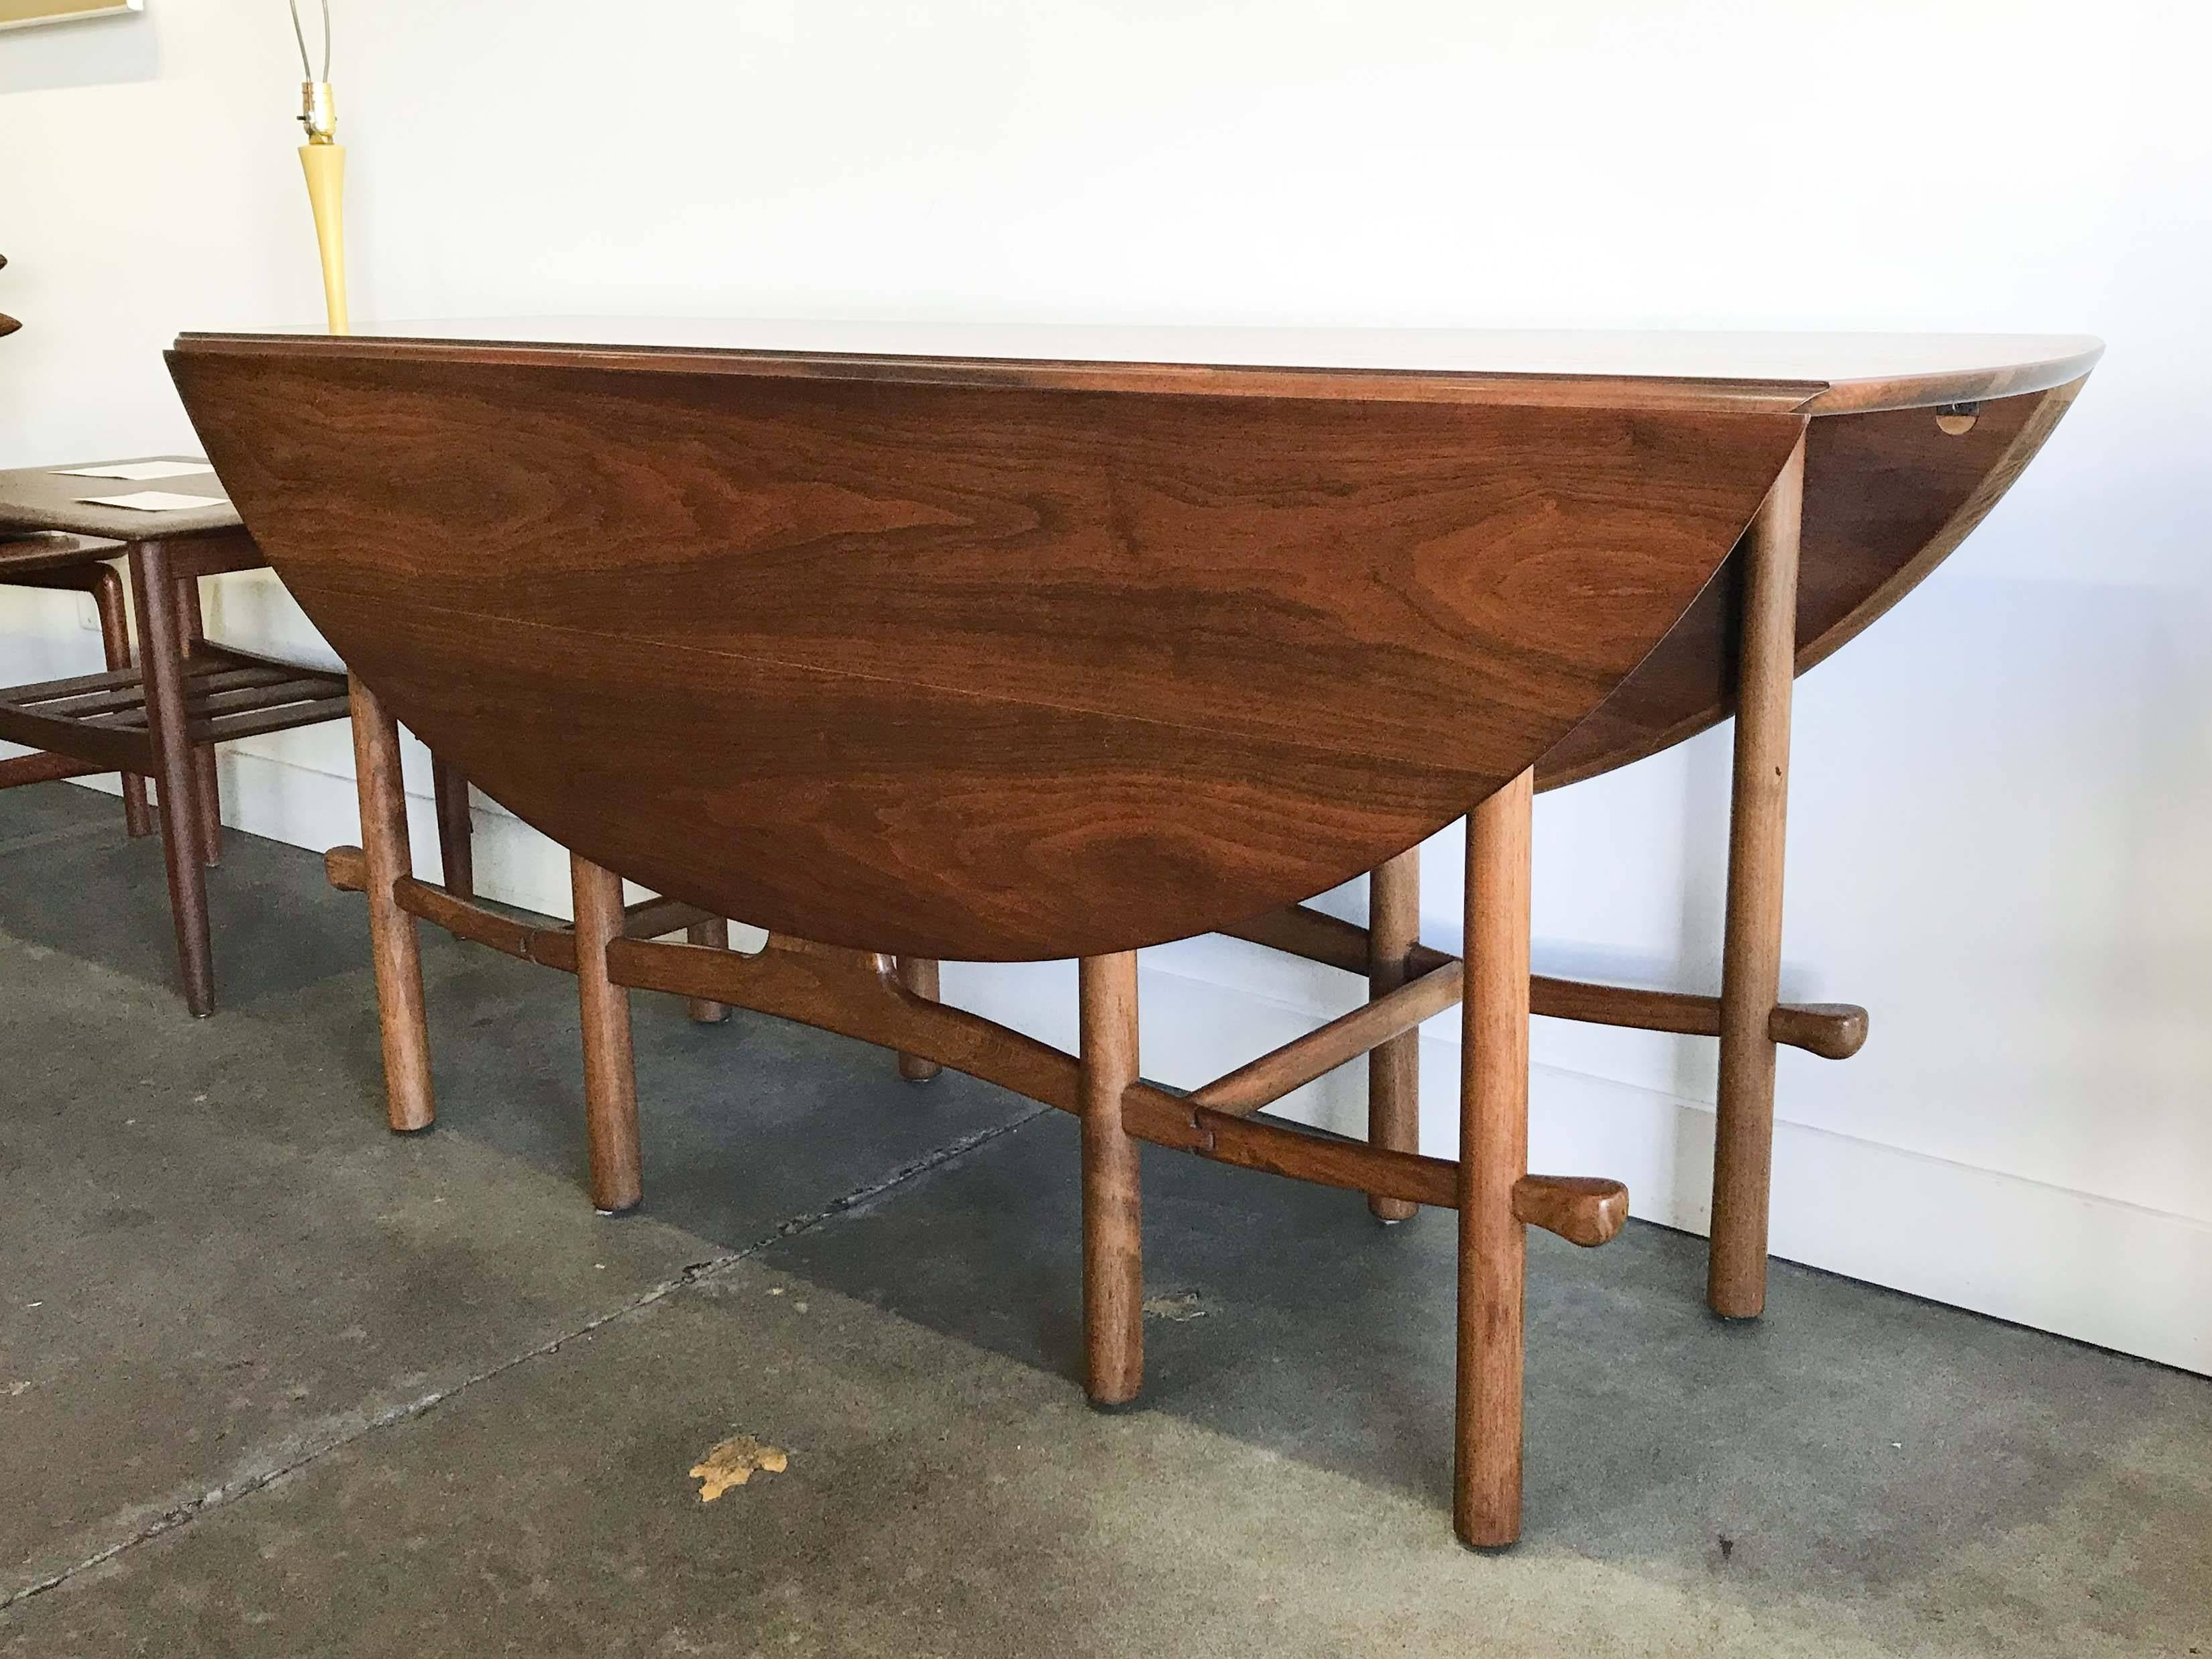 Heritage Henredon Was A Collaboration Between Drexel Heritage And Henredon  Furniture Manufacturers. Approximately 75